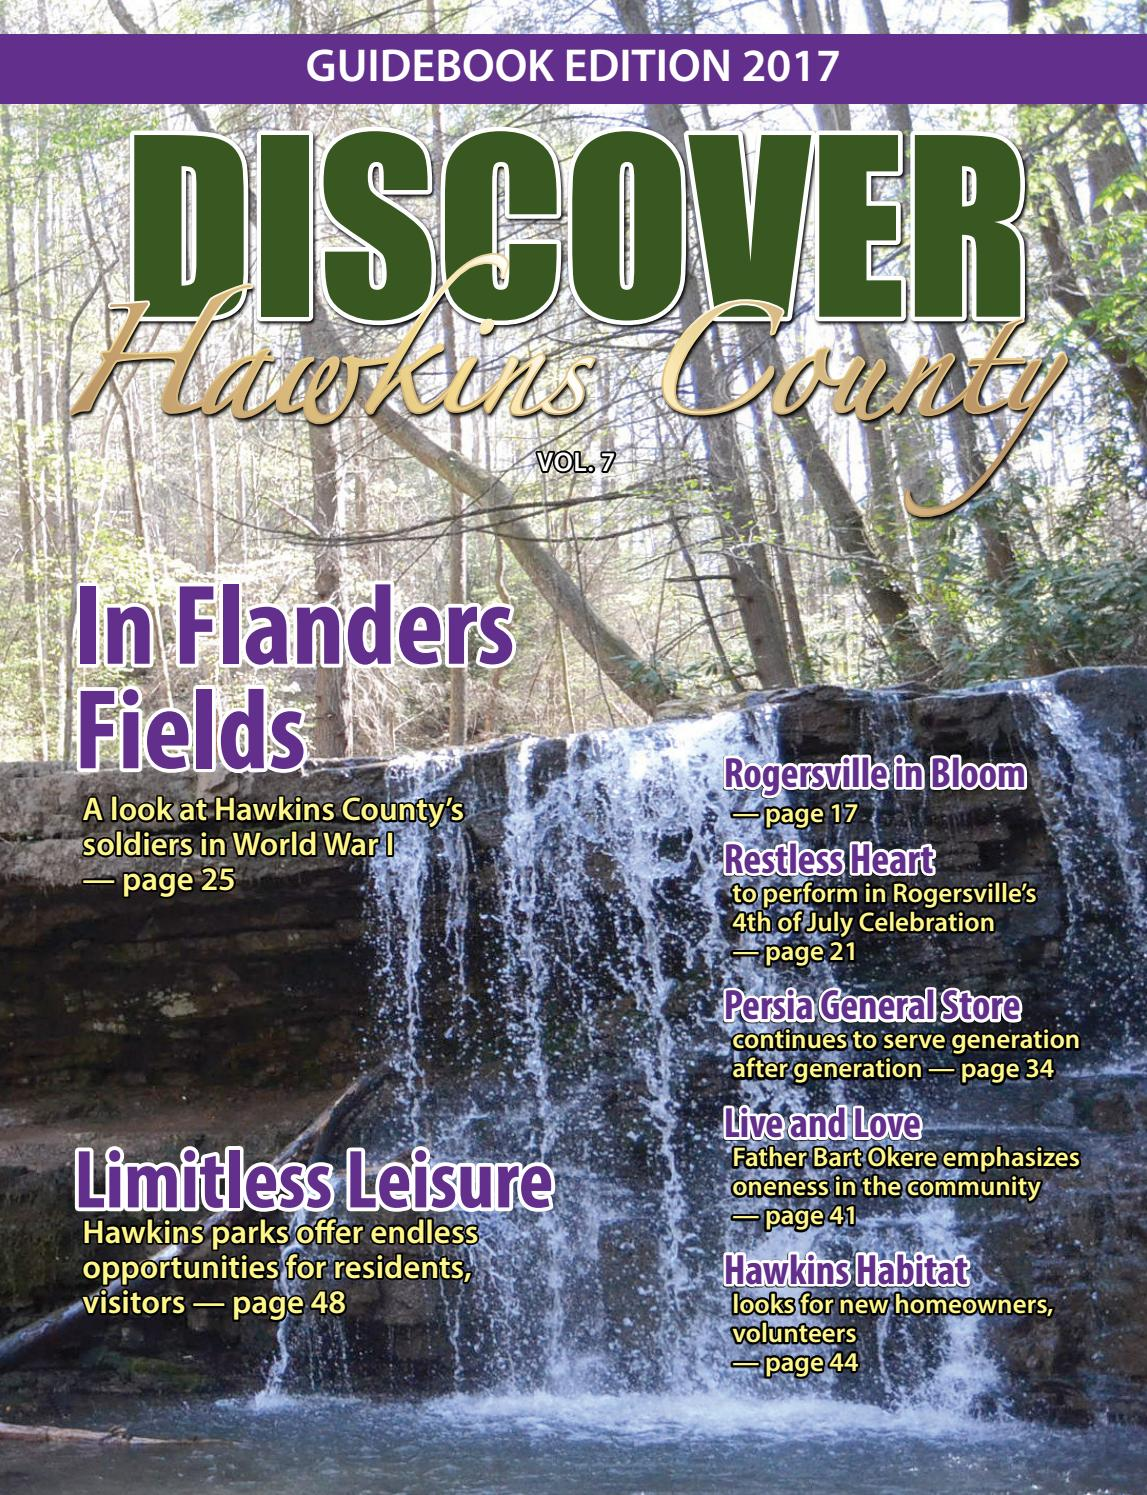 c5e7ad185df Discover Hawkins County 2017 by Discover Hawkins County - issuu